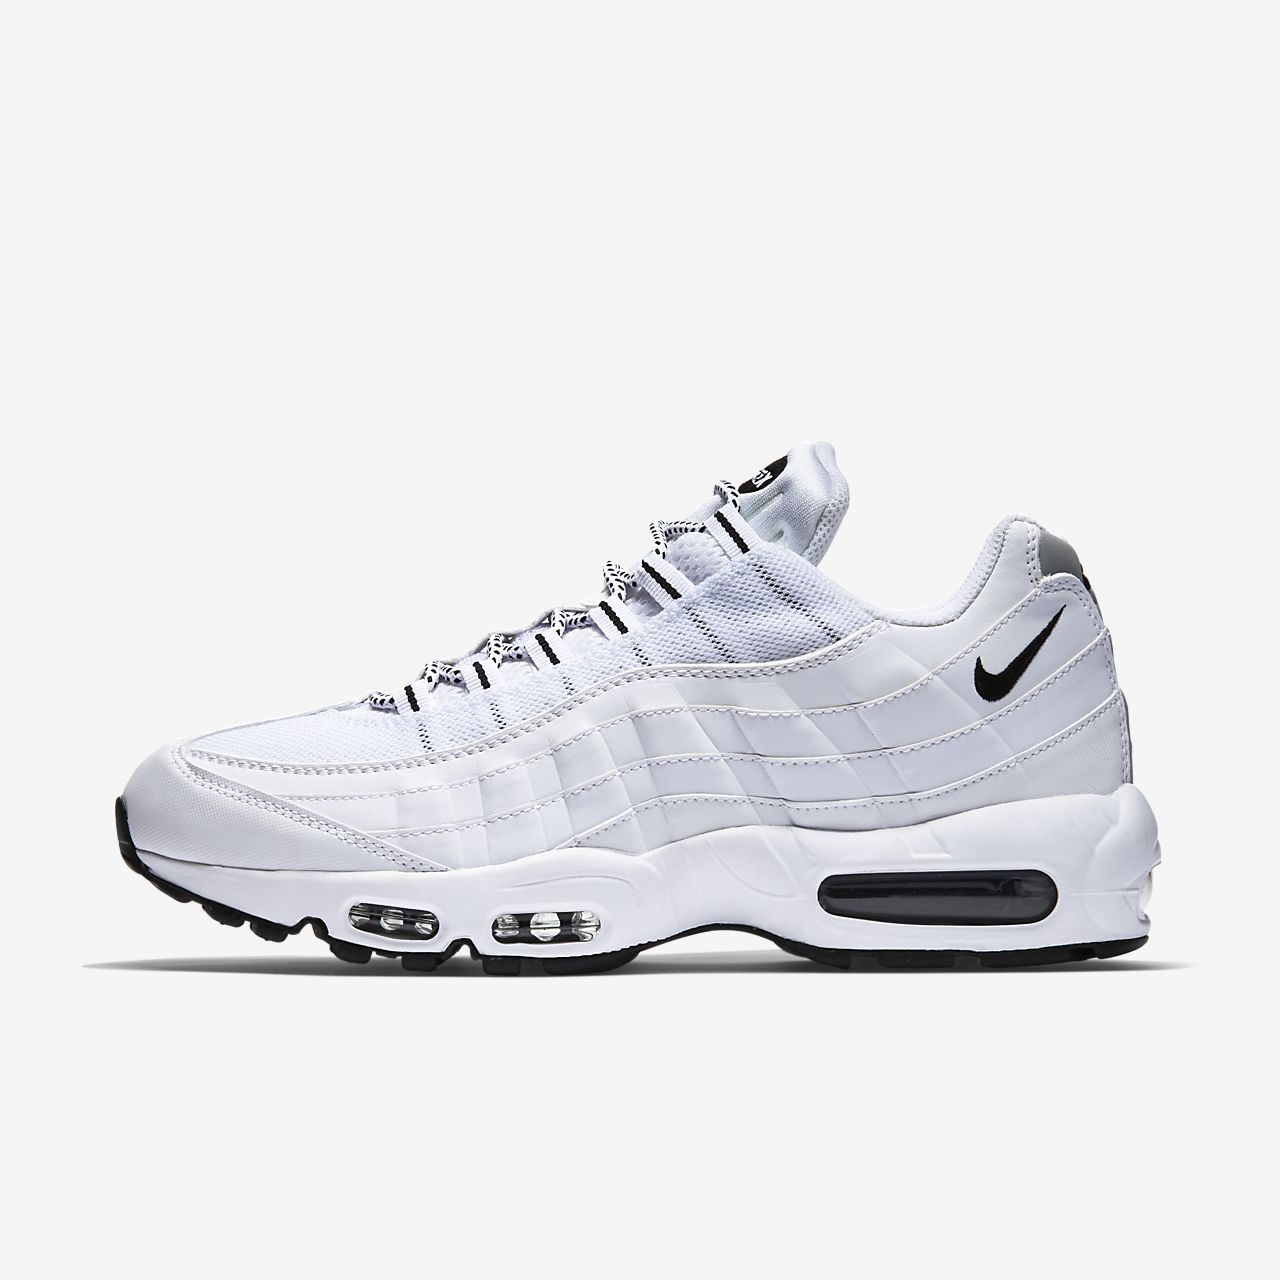 nike 2016 air max ireland nz